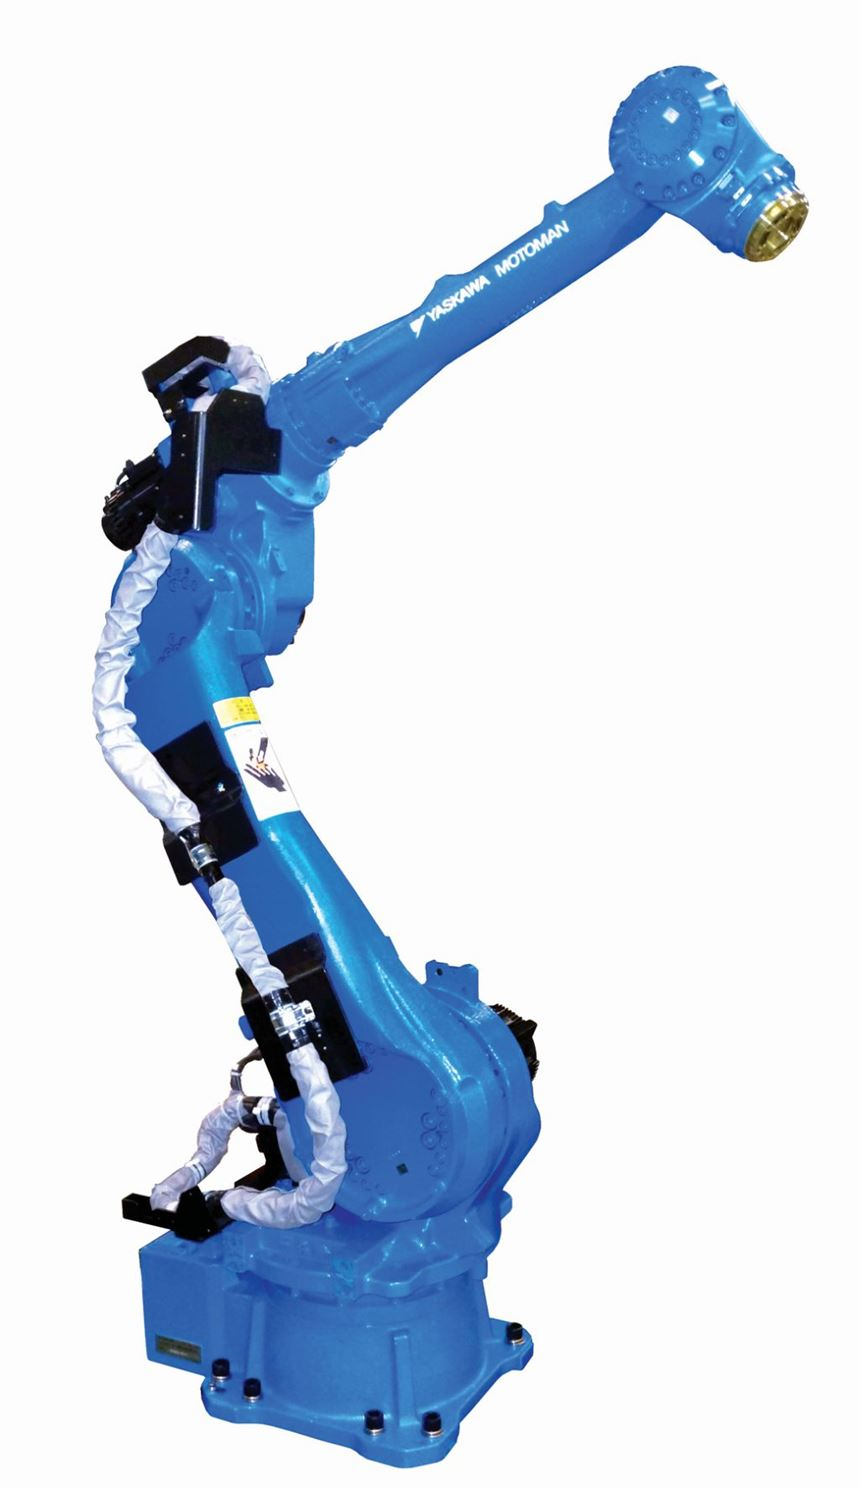 Yaskawa Motoman high-speed MH50 II robots